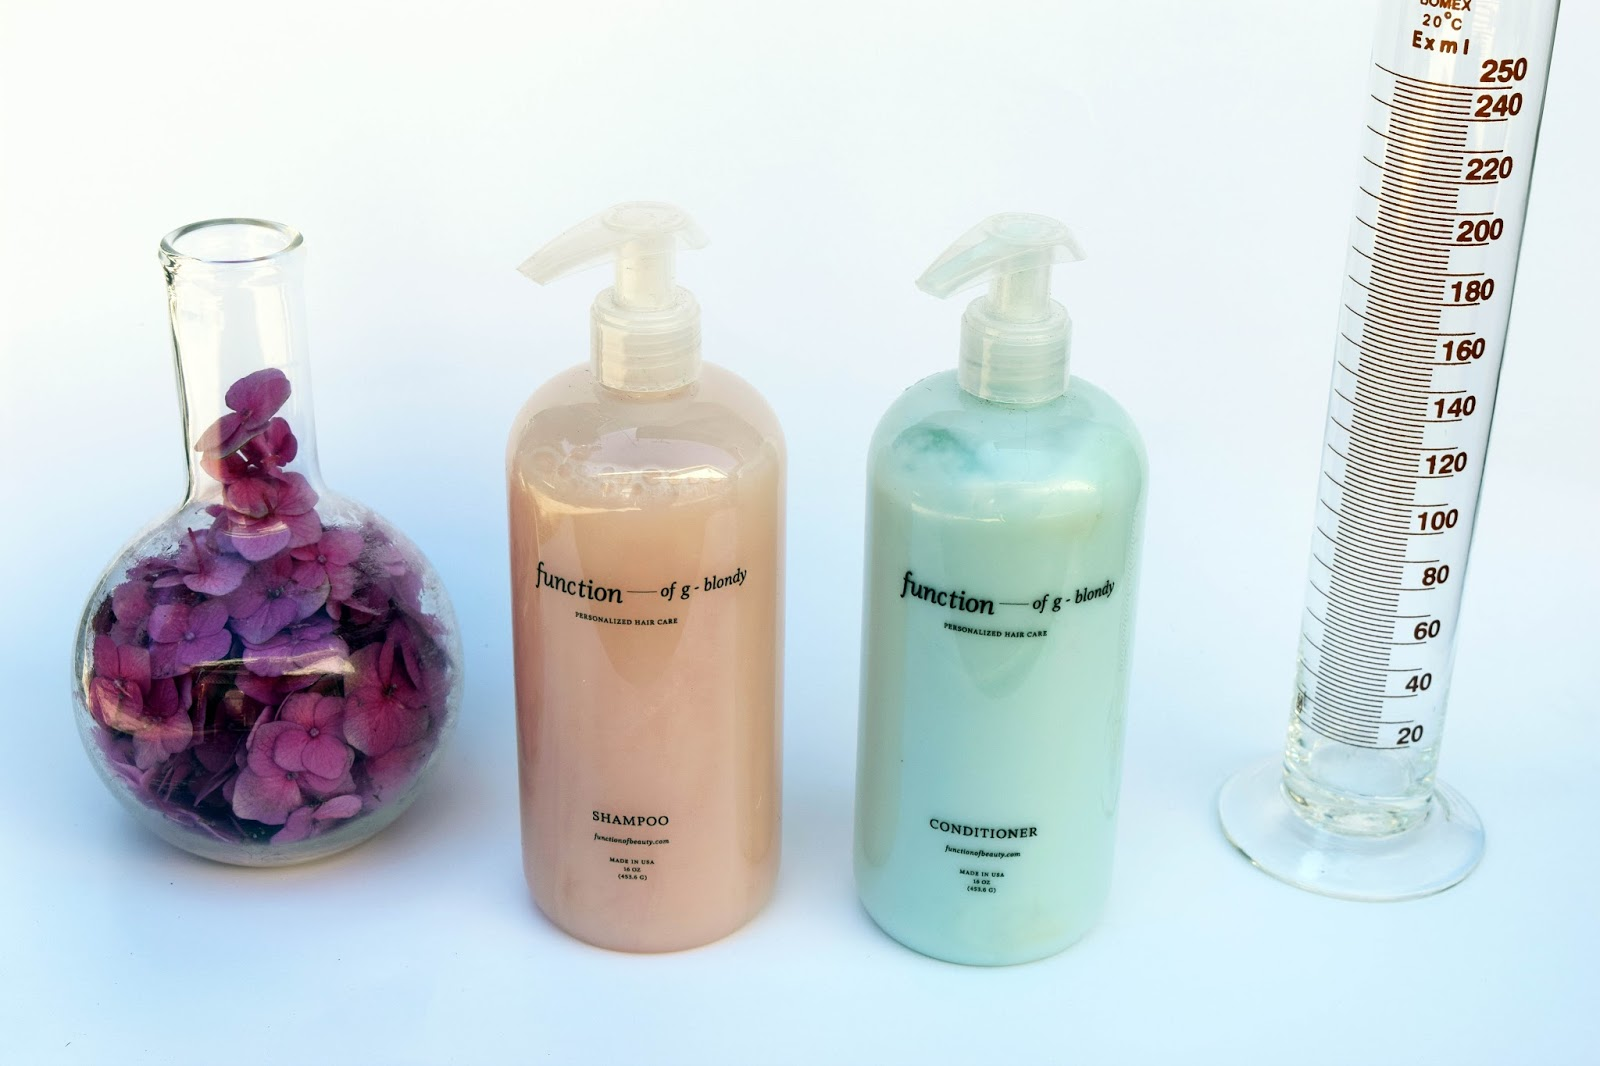 Function of beauty, hair care, customized hair care, make your own shampoo, shampoo, conditioner